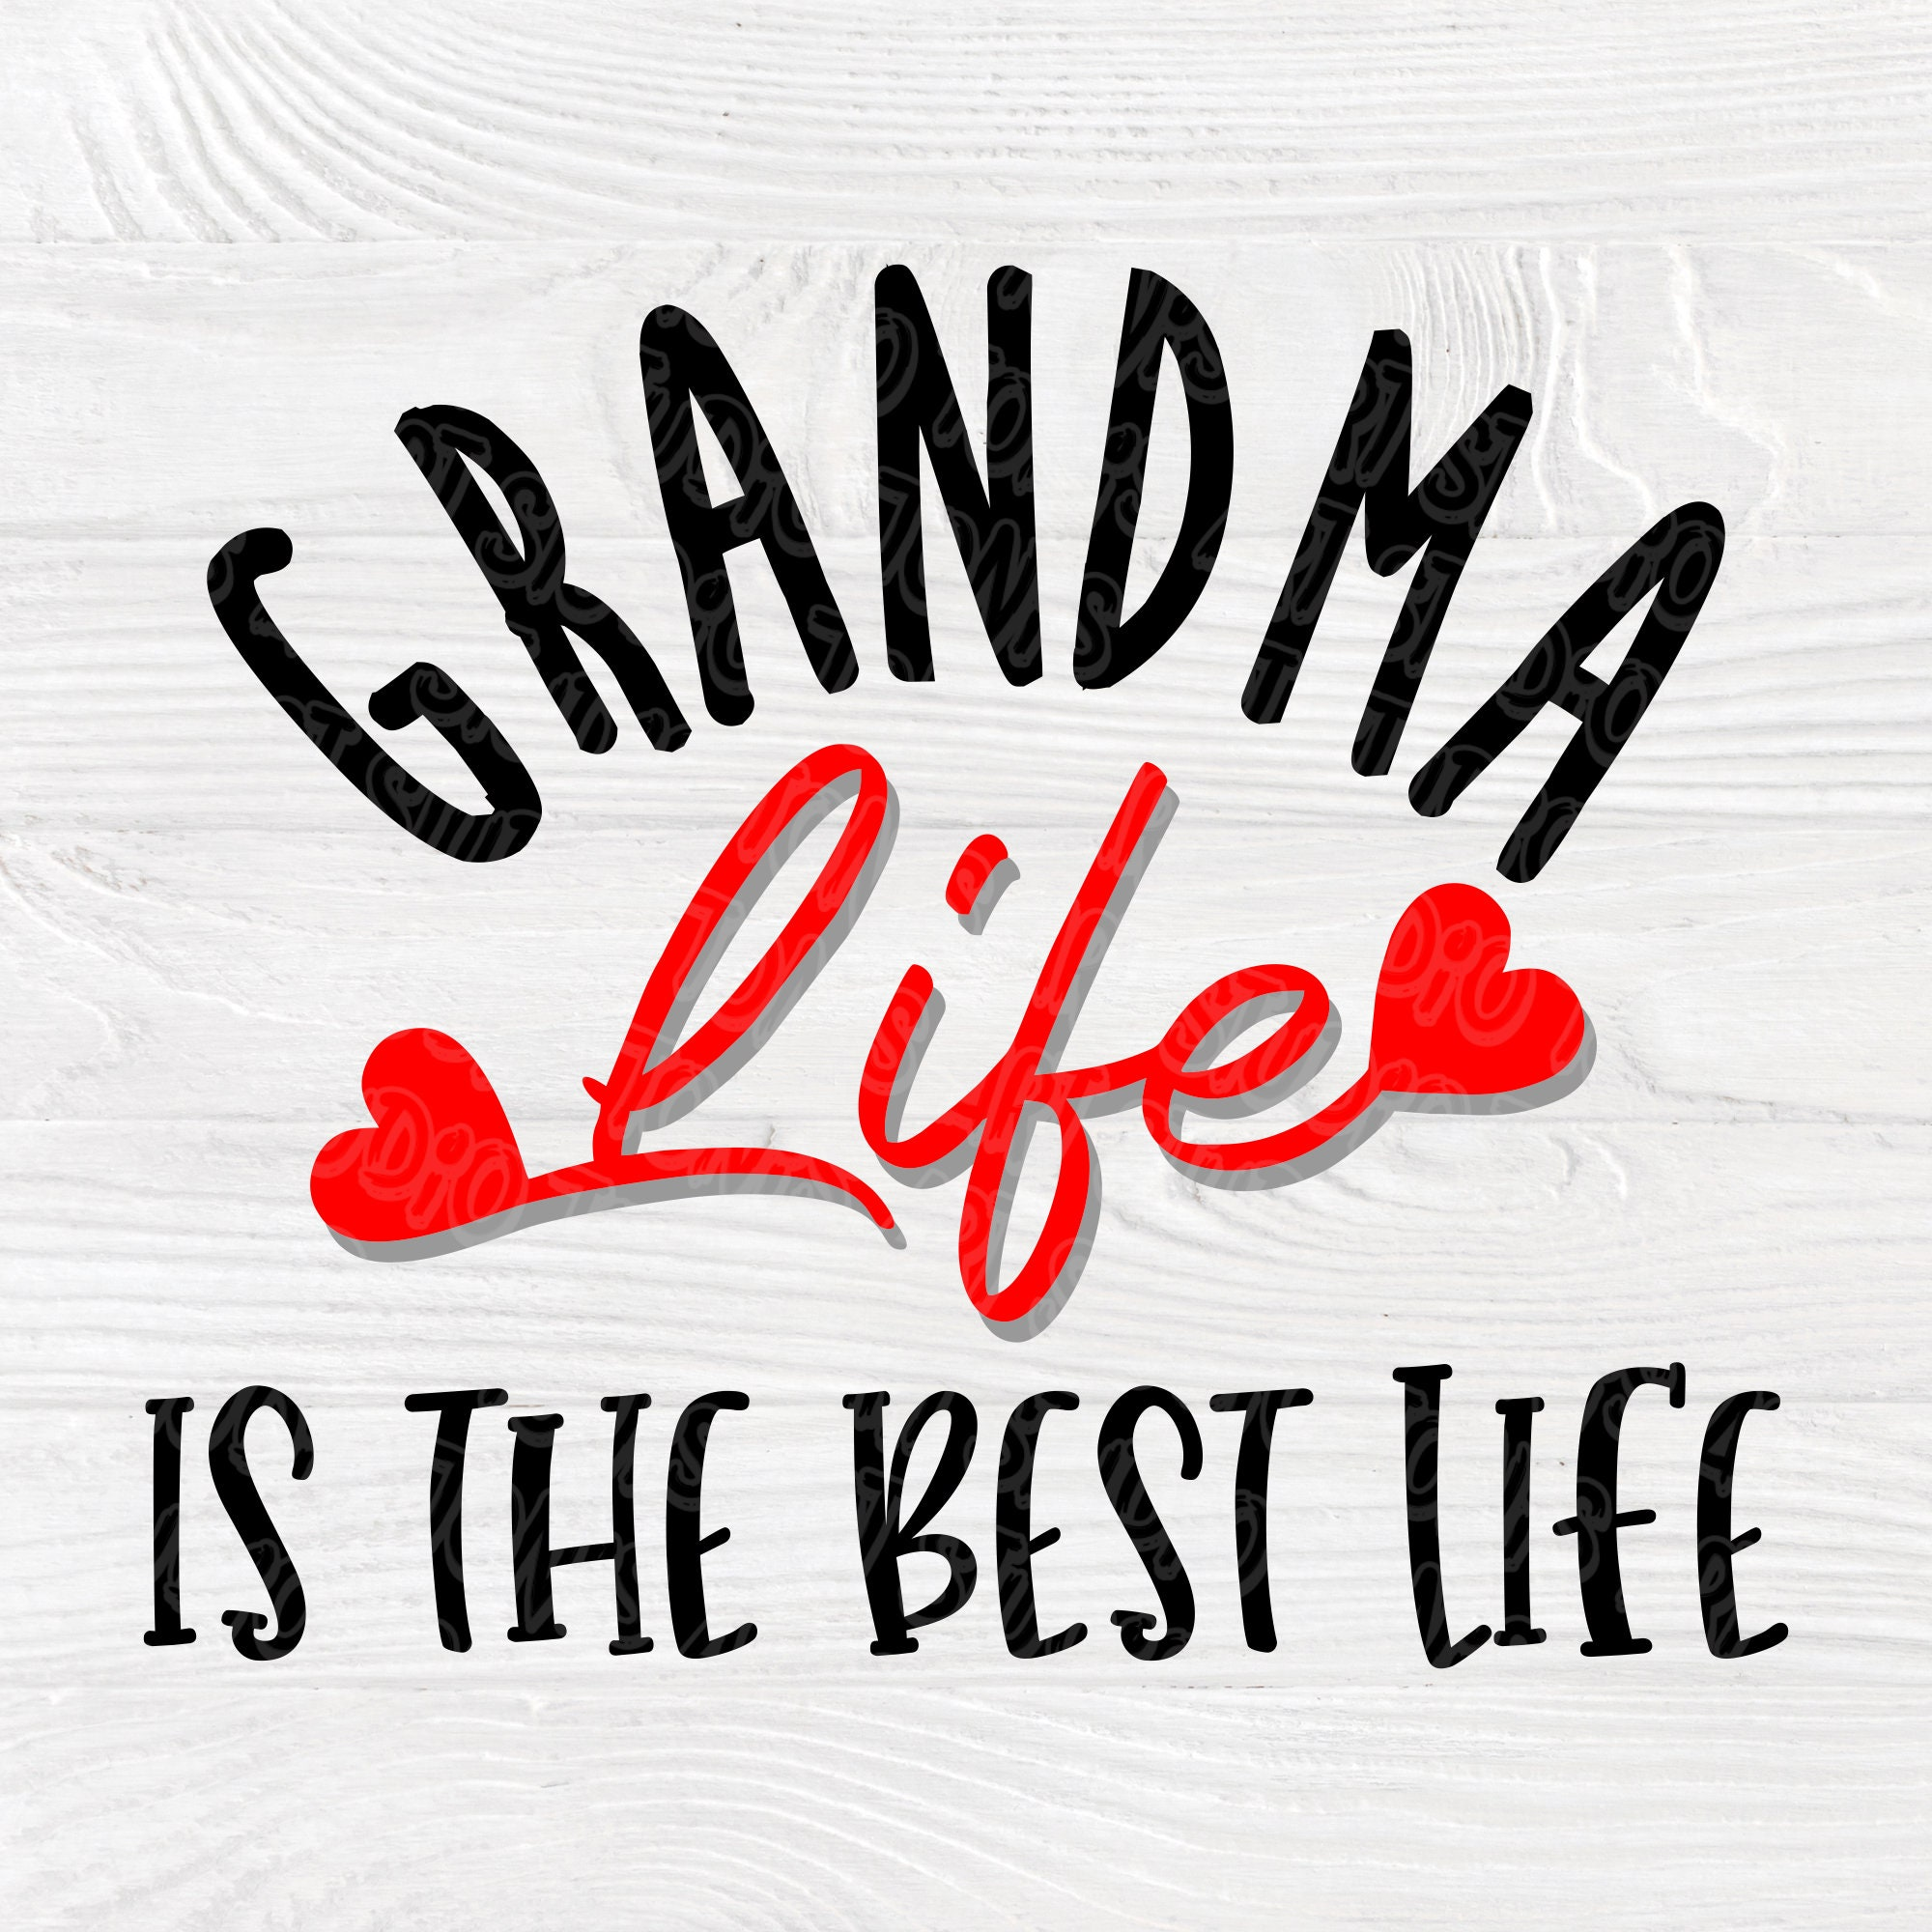 Grandma Life Is The Best Life Svg Png Eps Pdf Jpg Cut Files Grandma Svg Pregnancy Cut Files Grandma T Shirt Grandma Life Svg Design